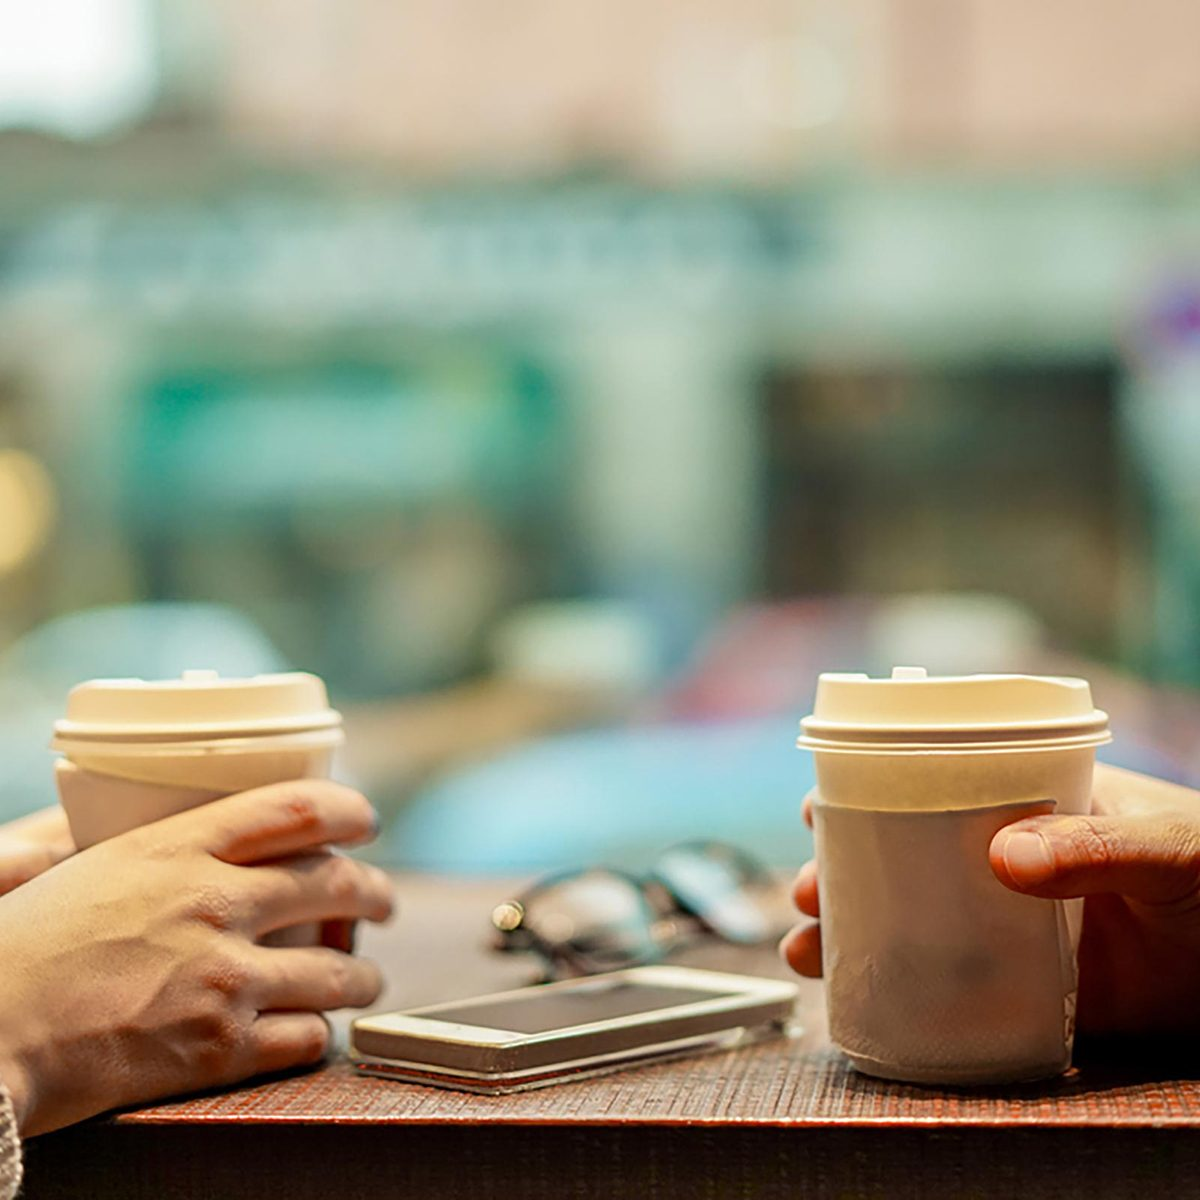 Two people sitting at table drinking coffee